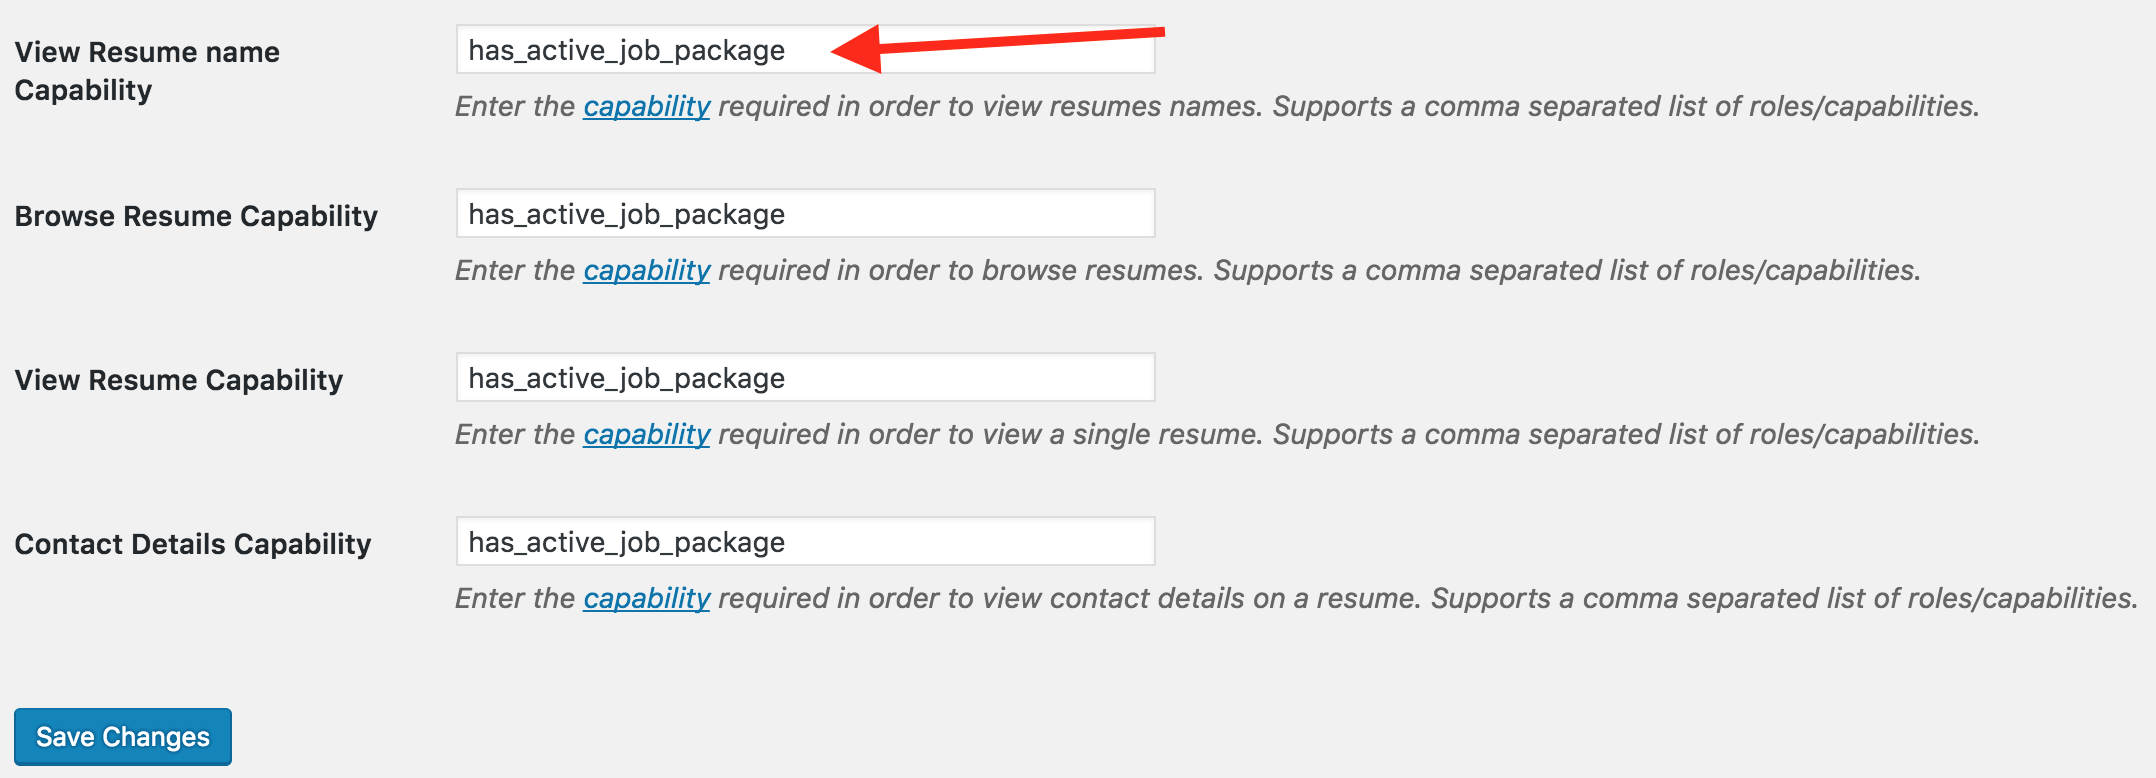 tutorial require an active job package to view resumes